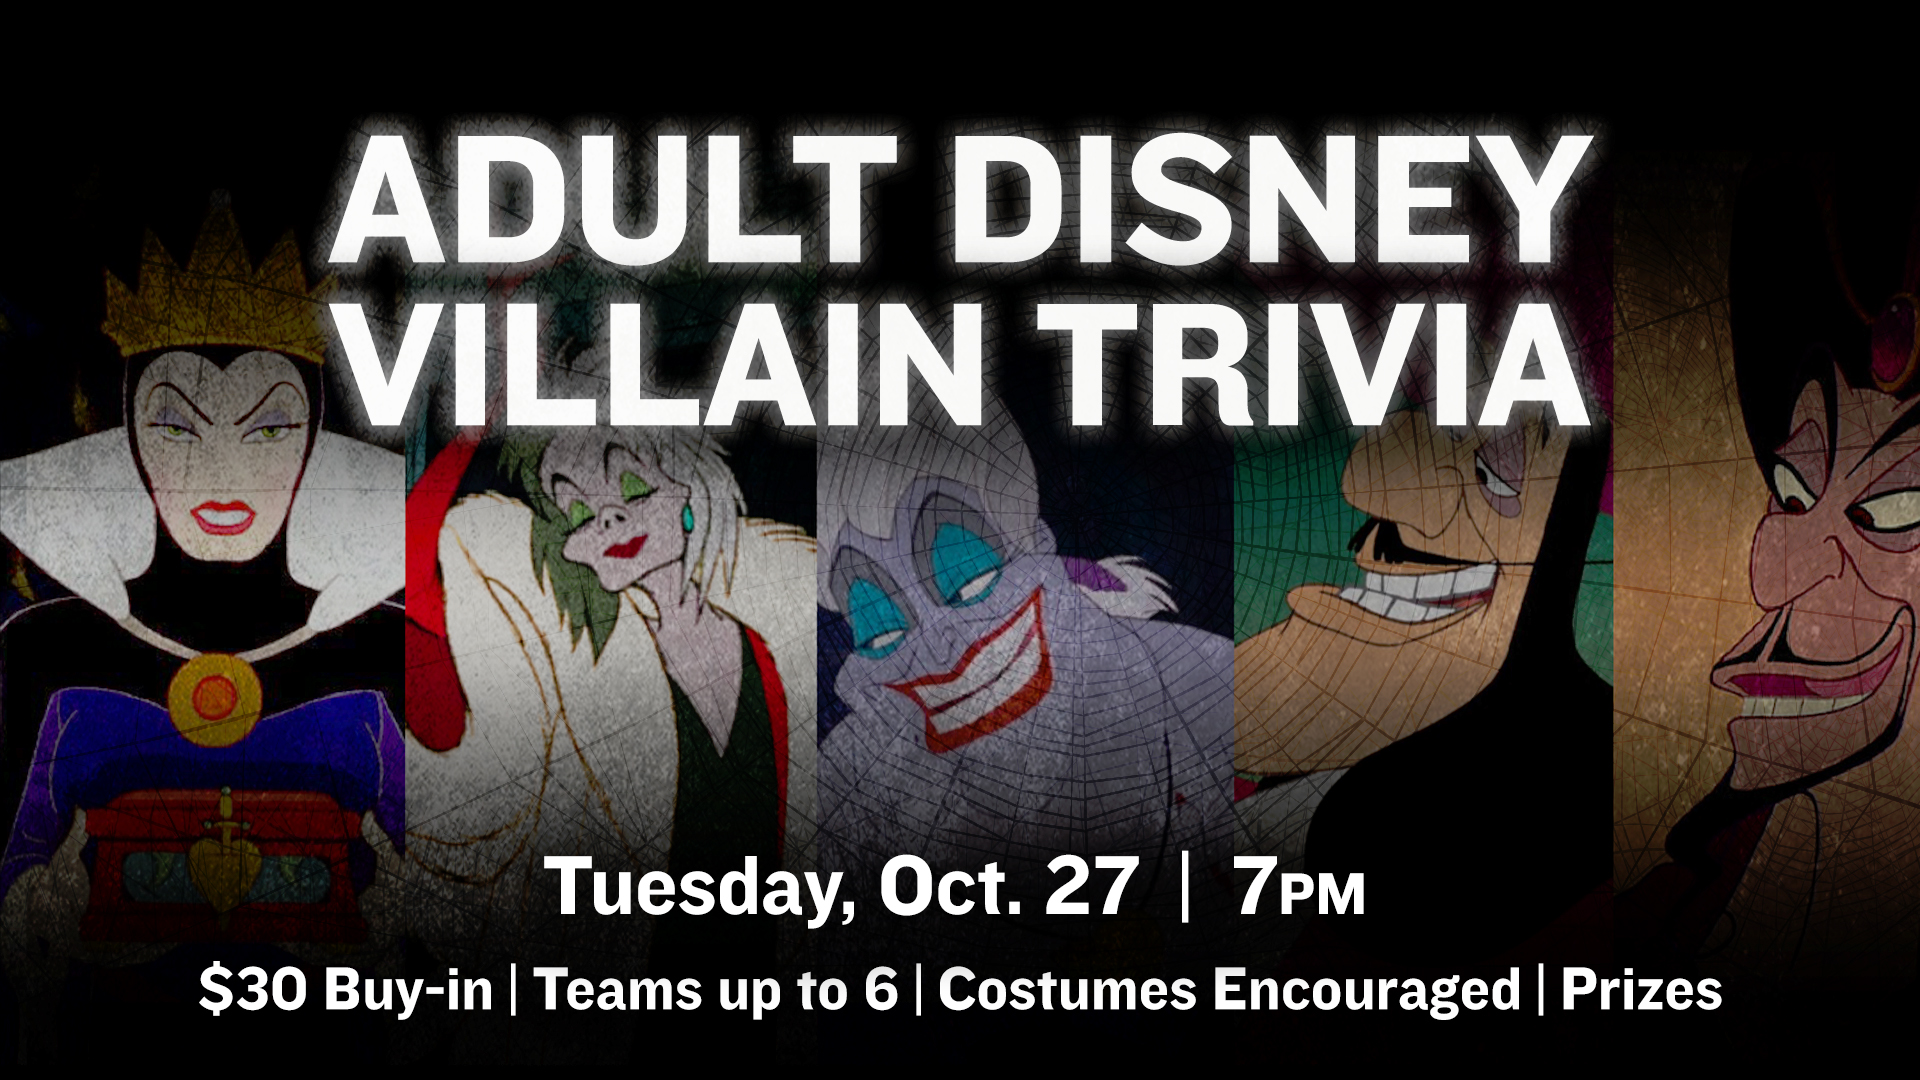 Promo image of Adult Disney Villain Trivia Night